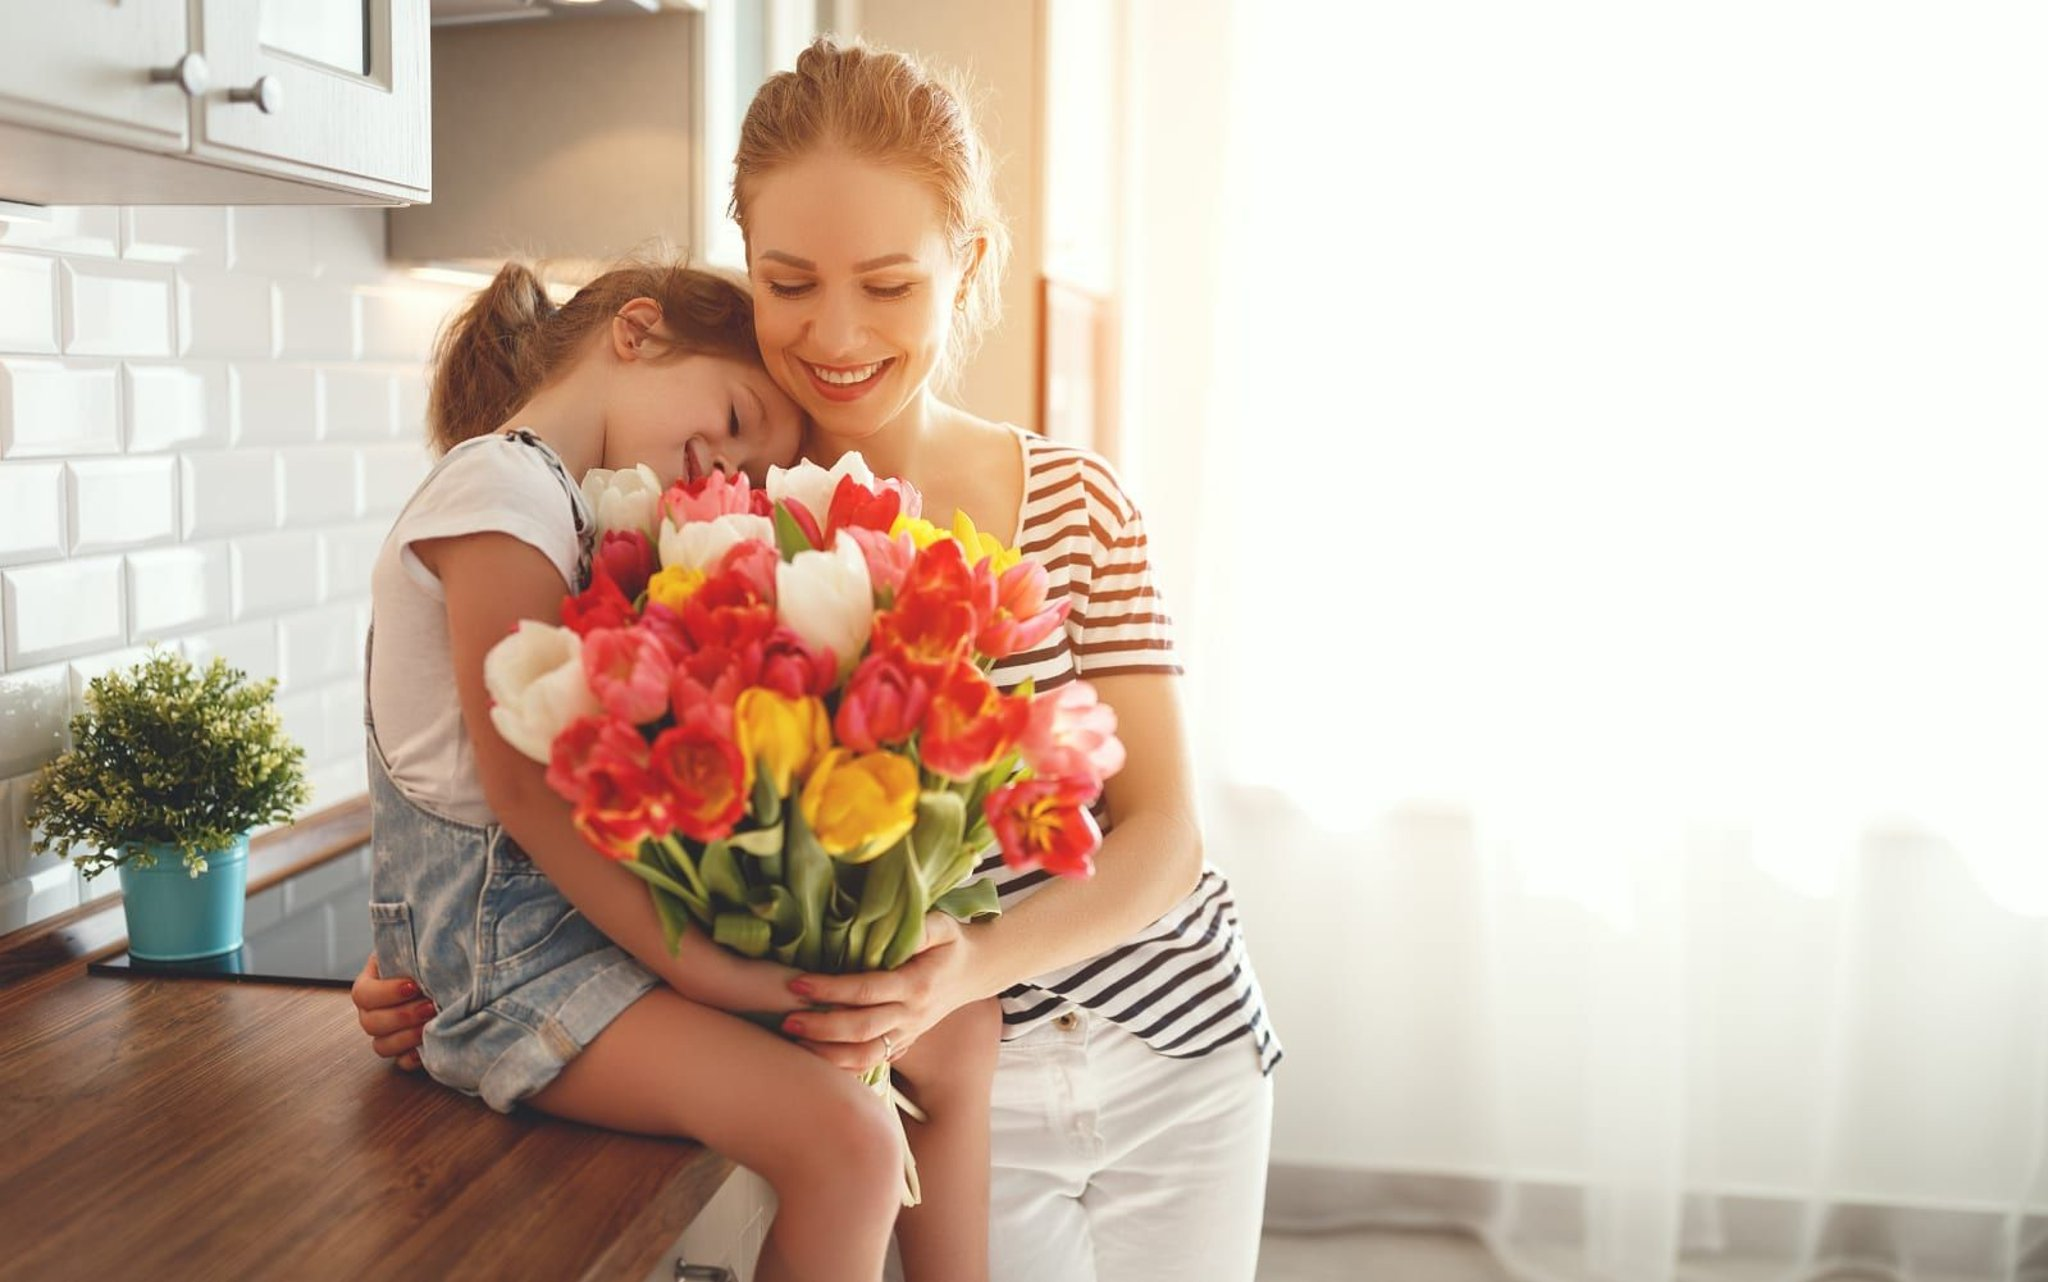 mother's day 2021 - photo #44